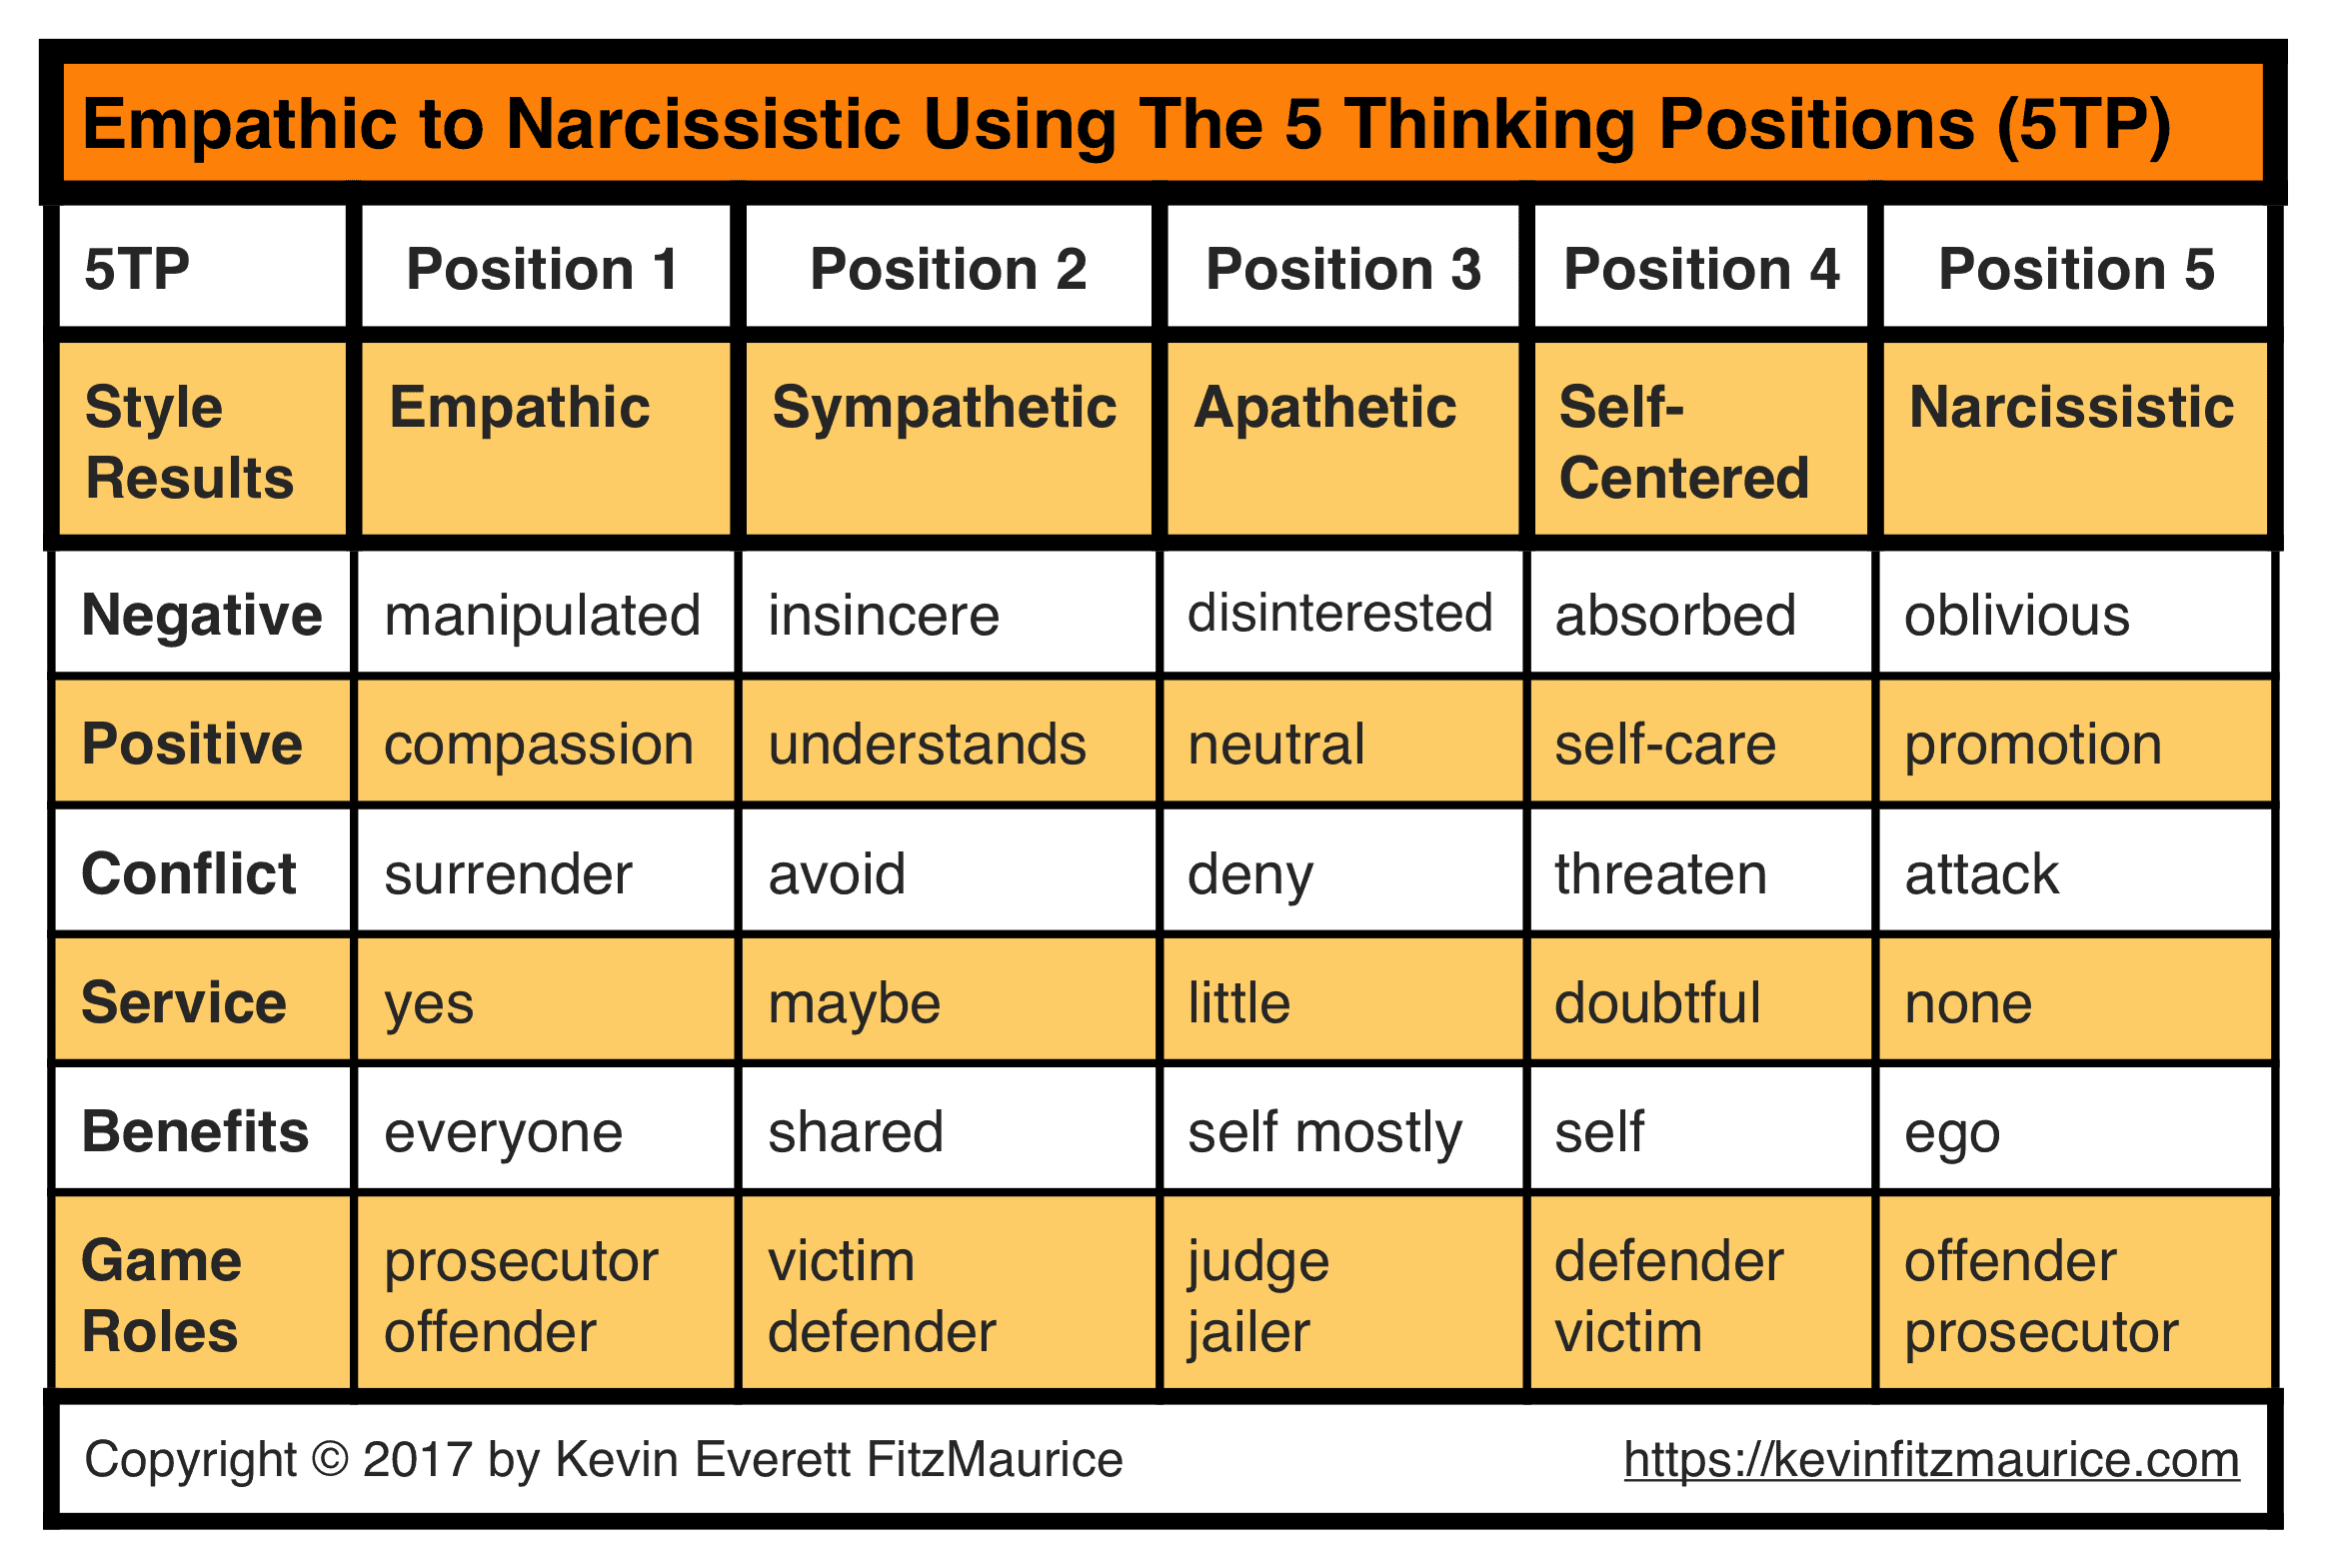 Empathic to Narcissistic Using 5TP